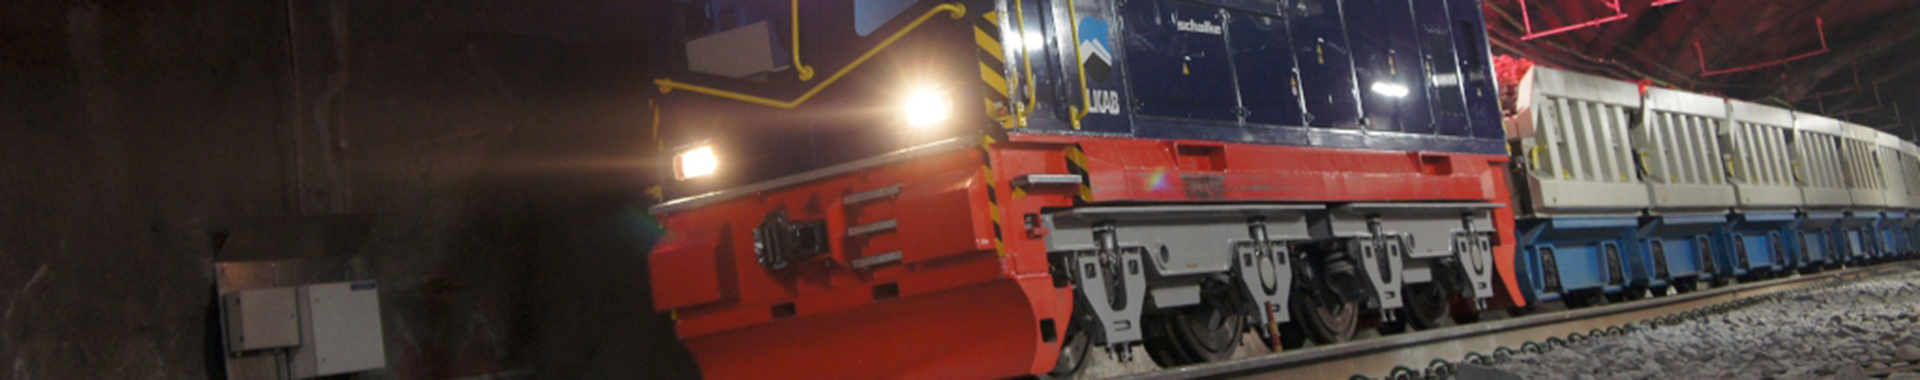 In the Kiruna Mine in Sweden the 108-tonne production locomotive operates in depths of 1,365m below ground level.